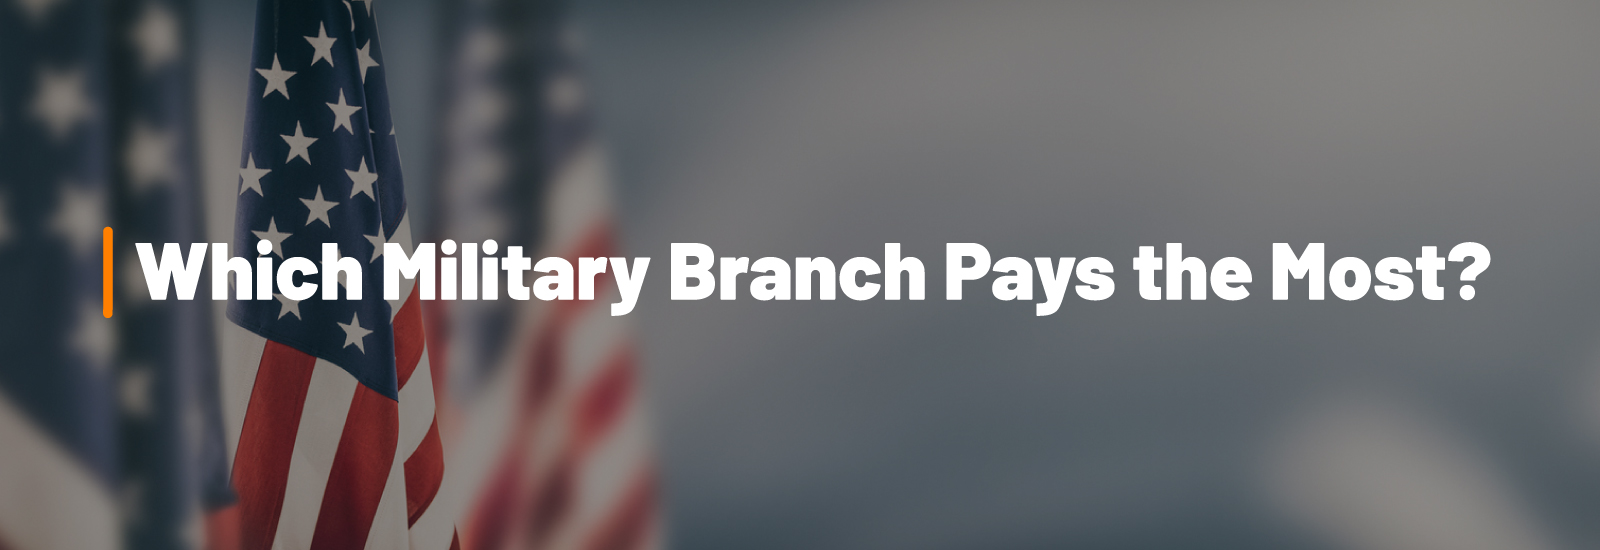 Which Military Branch Pays the Most?